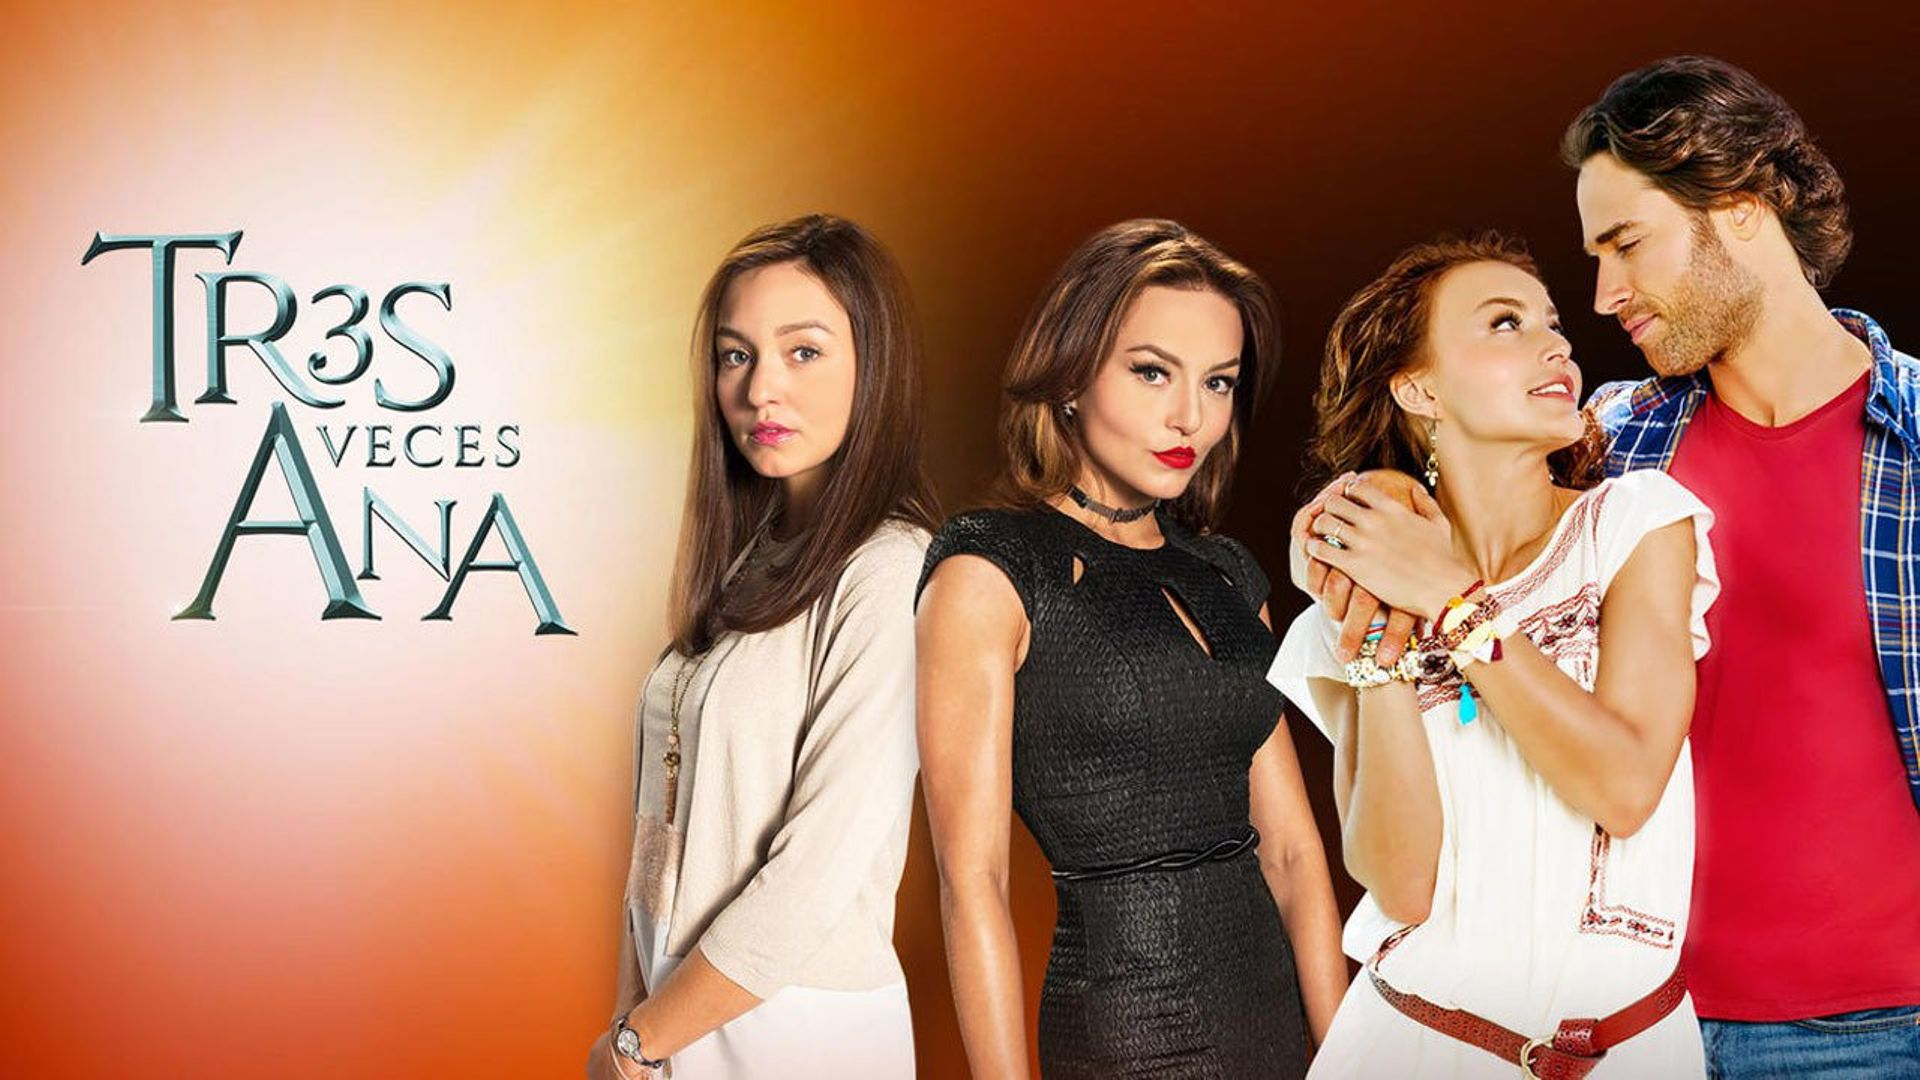 Angelique Boyer Movies And Tv Shows the three sides of ana - where to watch every episode